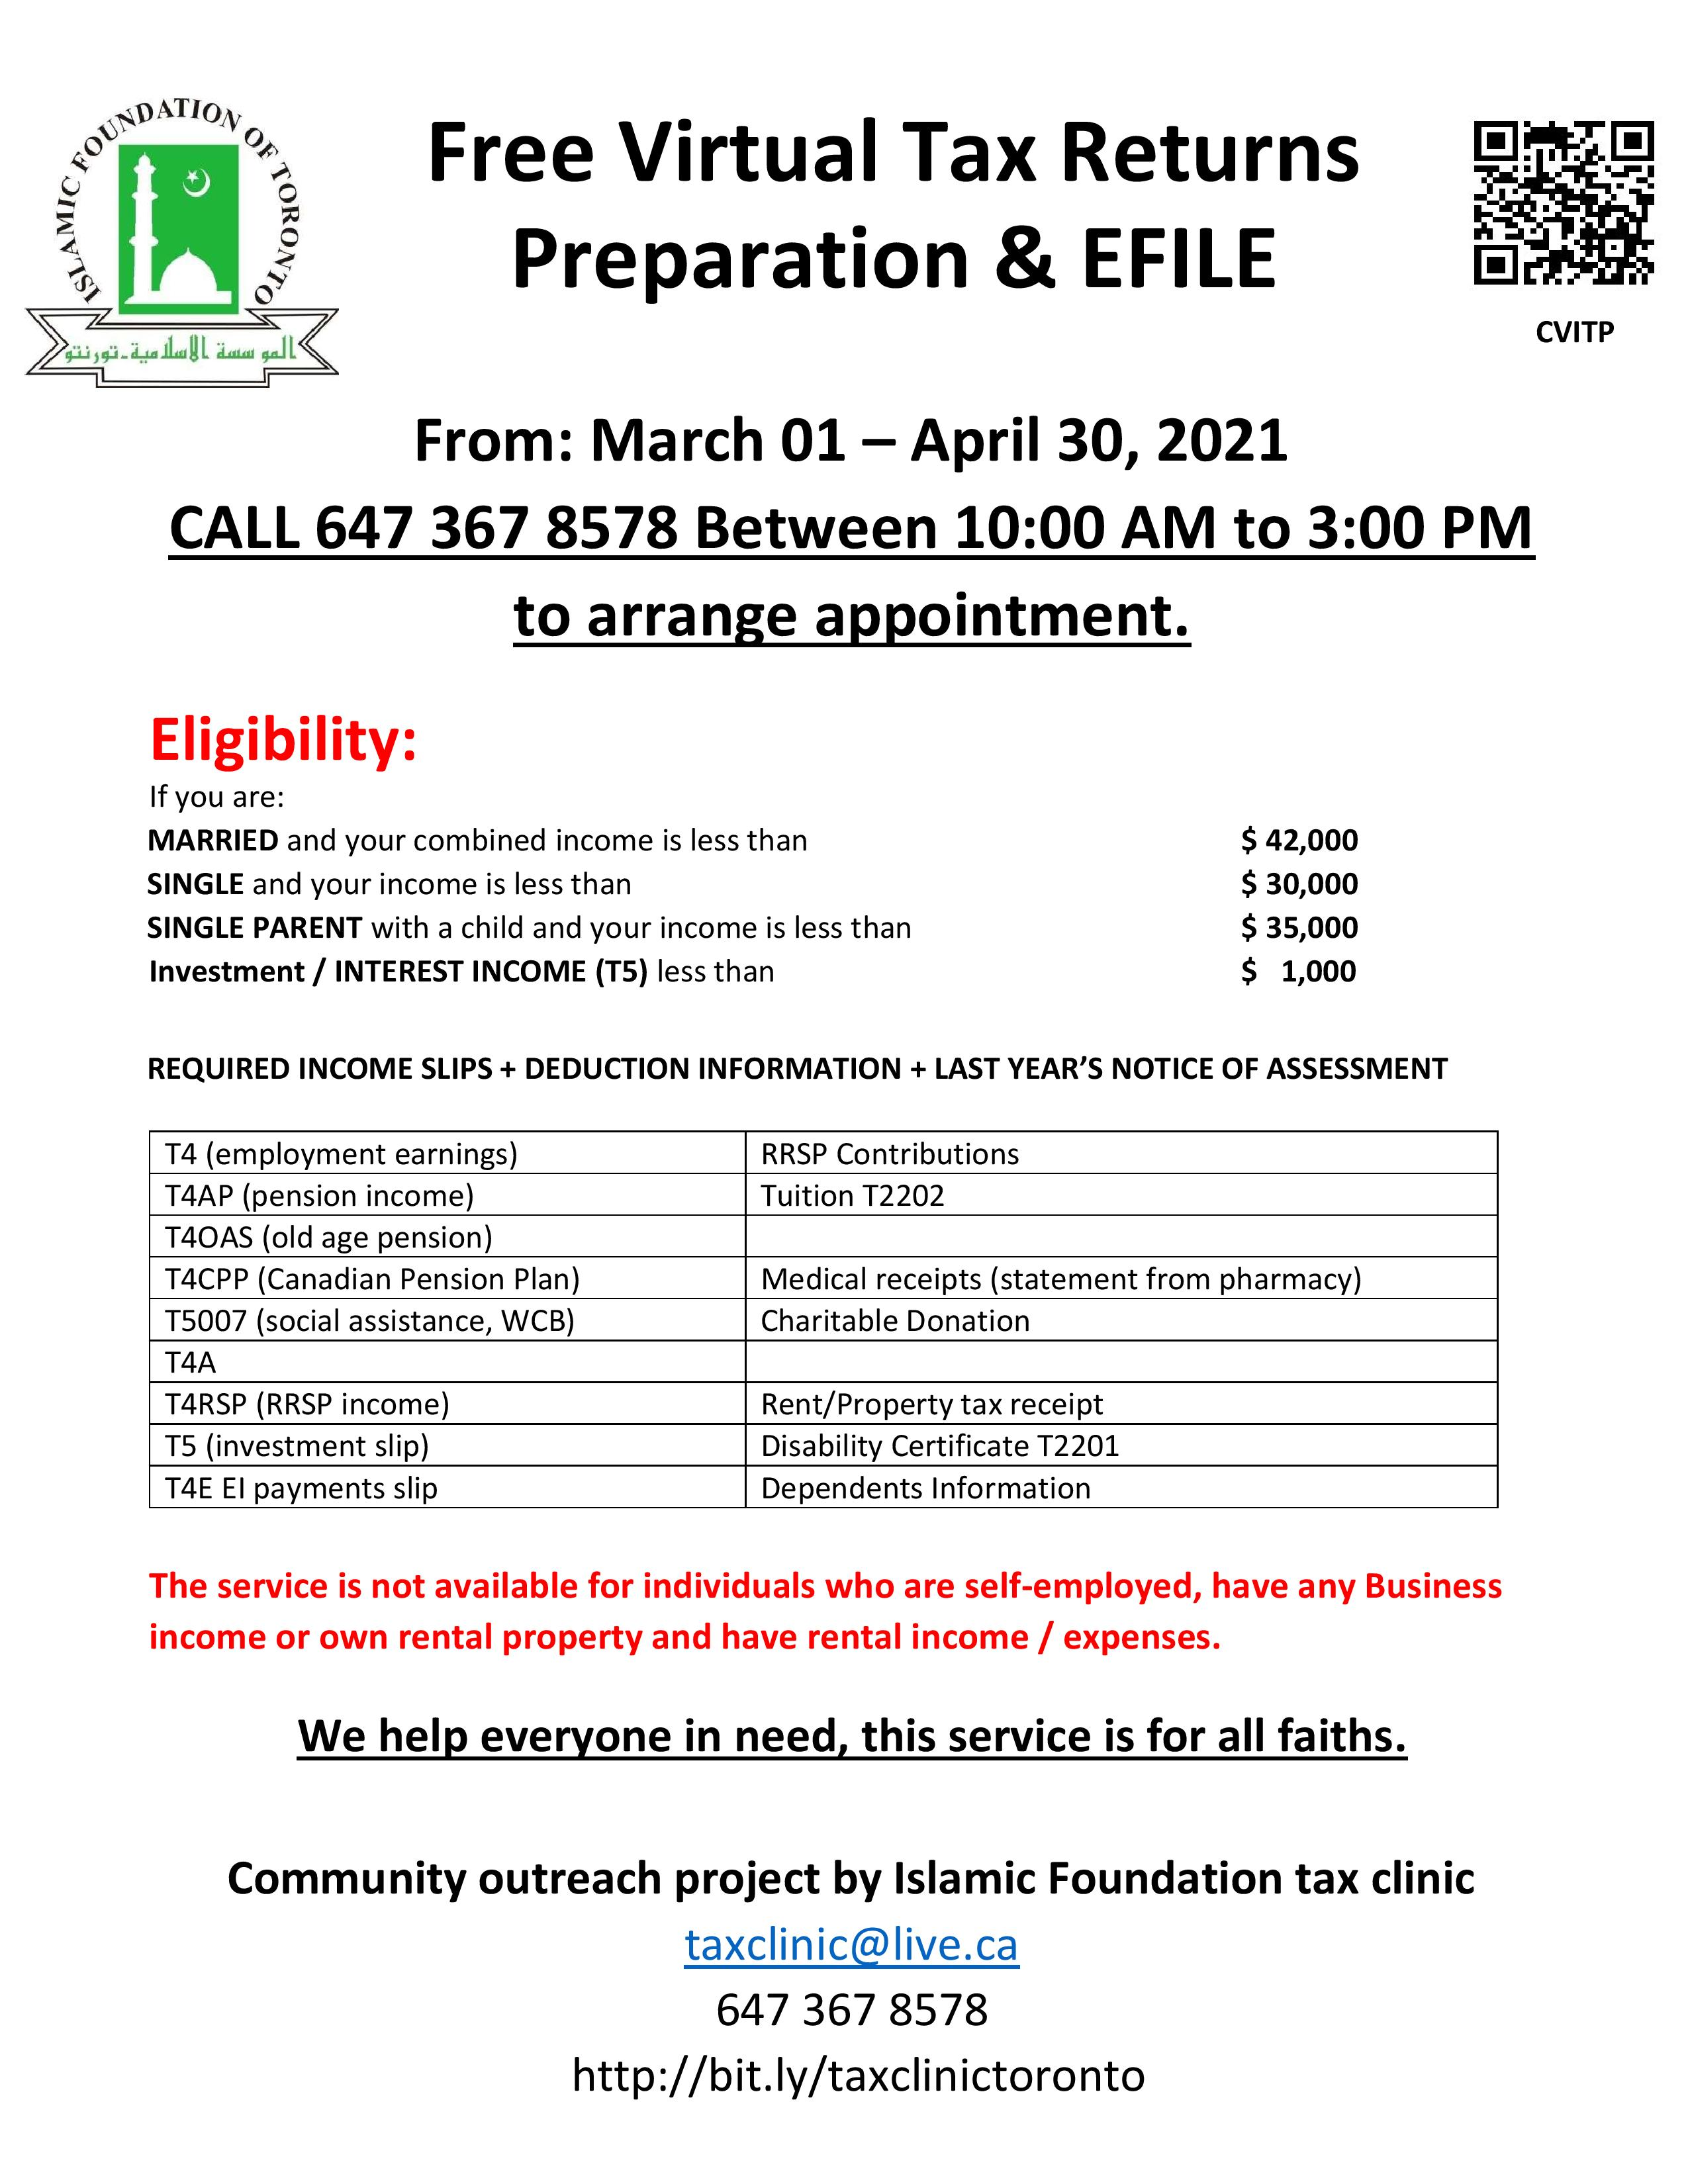 IFT Tax flyer Consolidated 2021 (1)-page-001.jpg